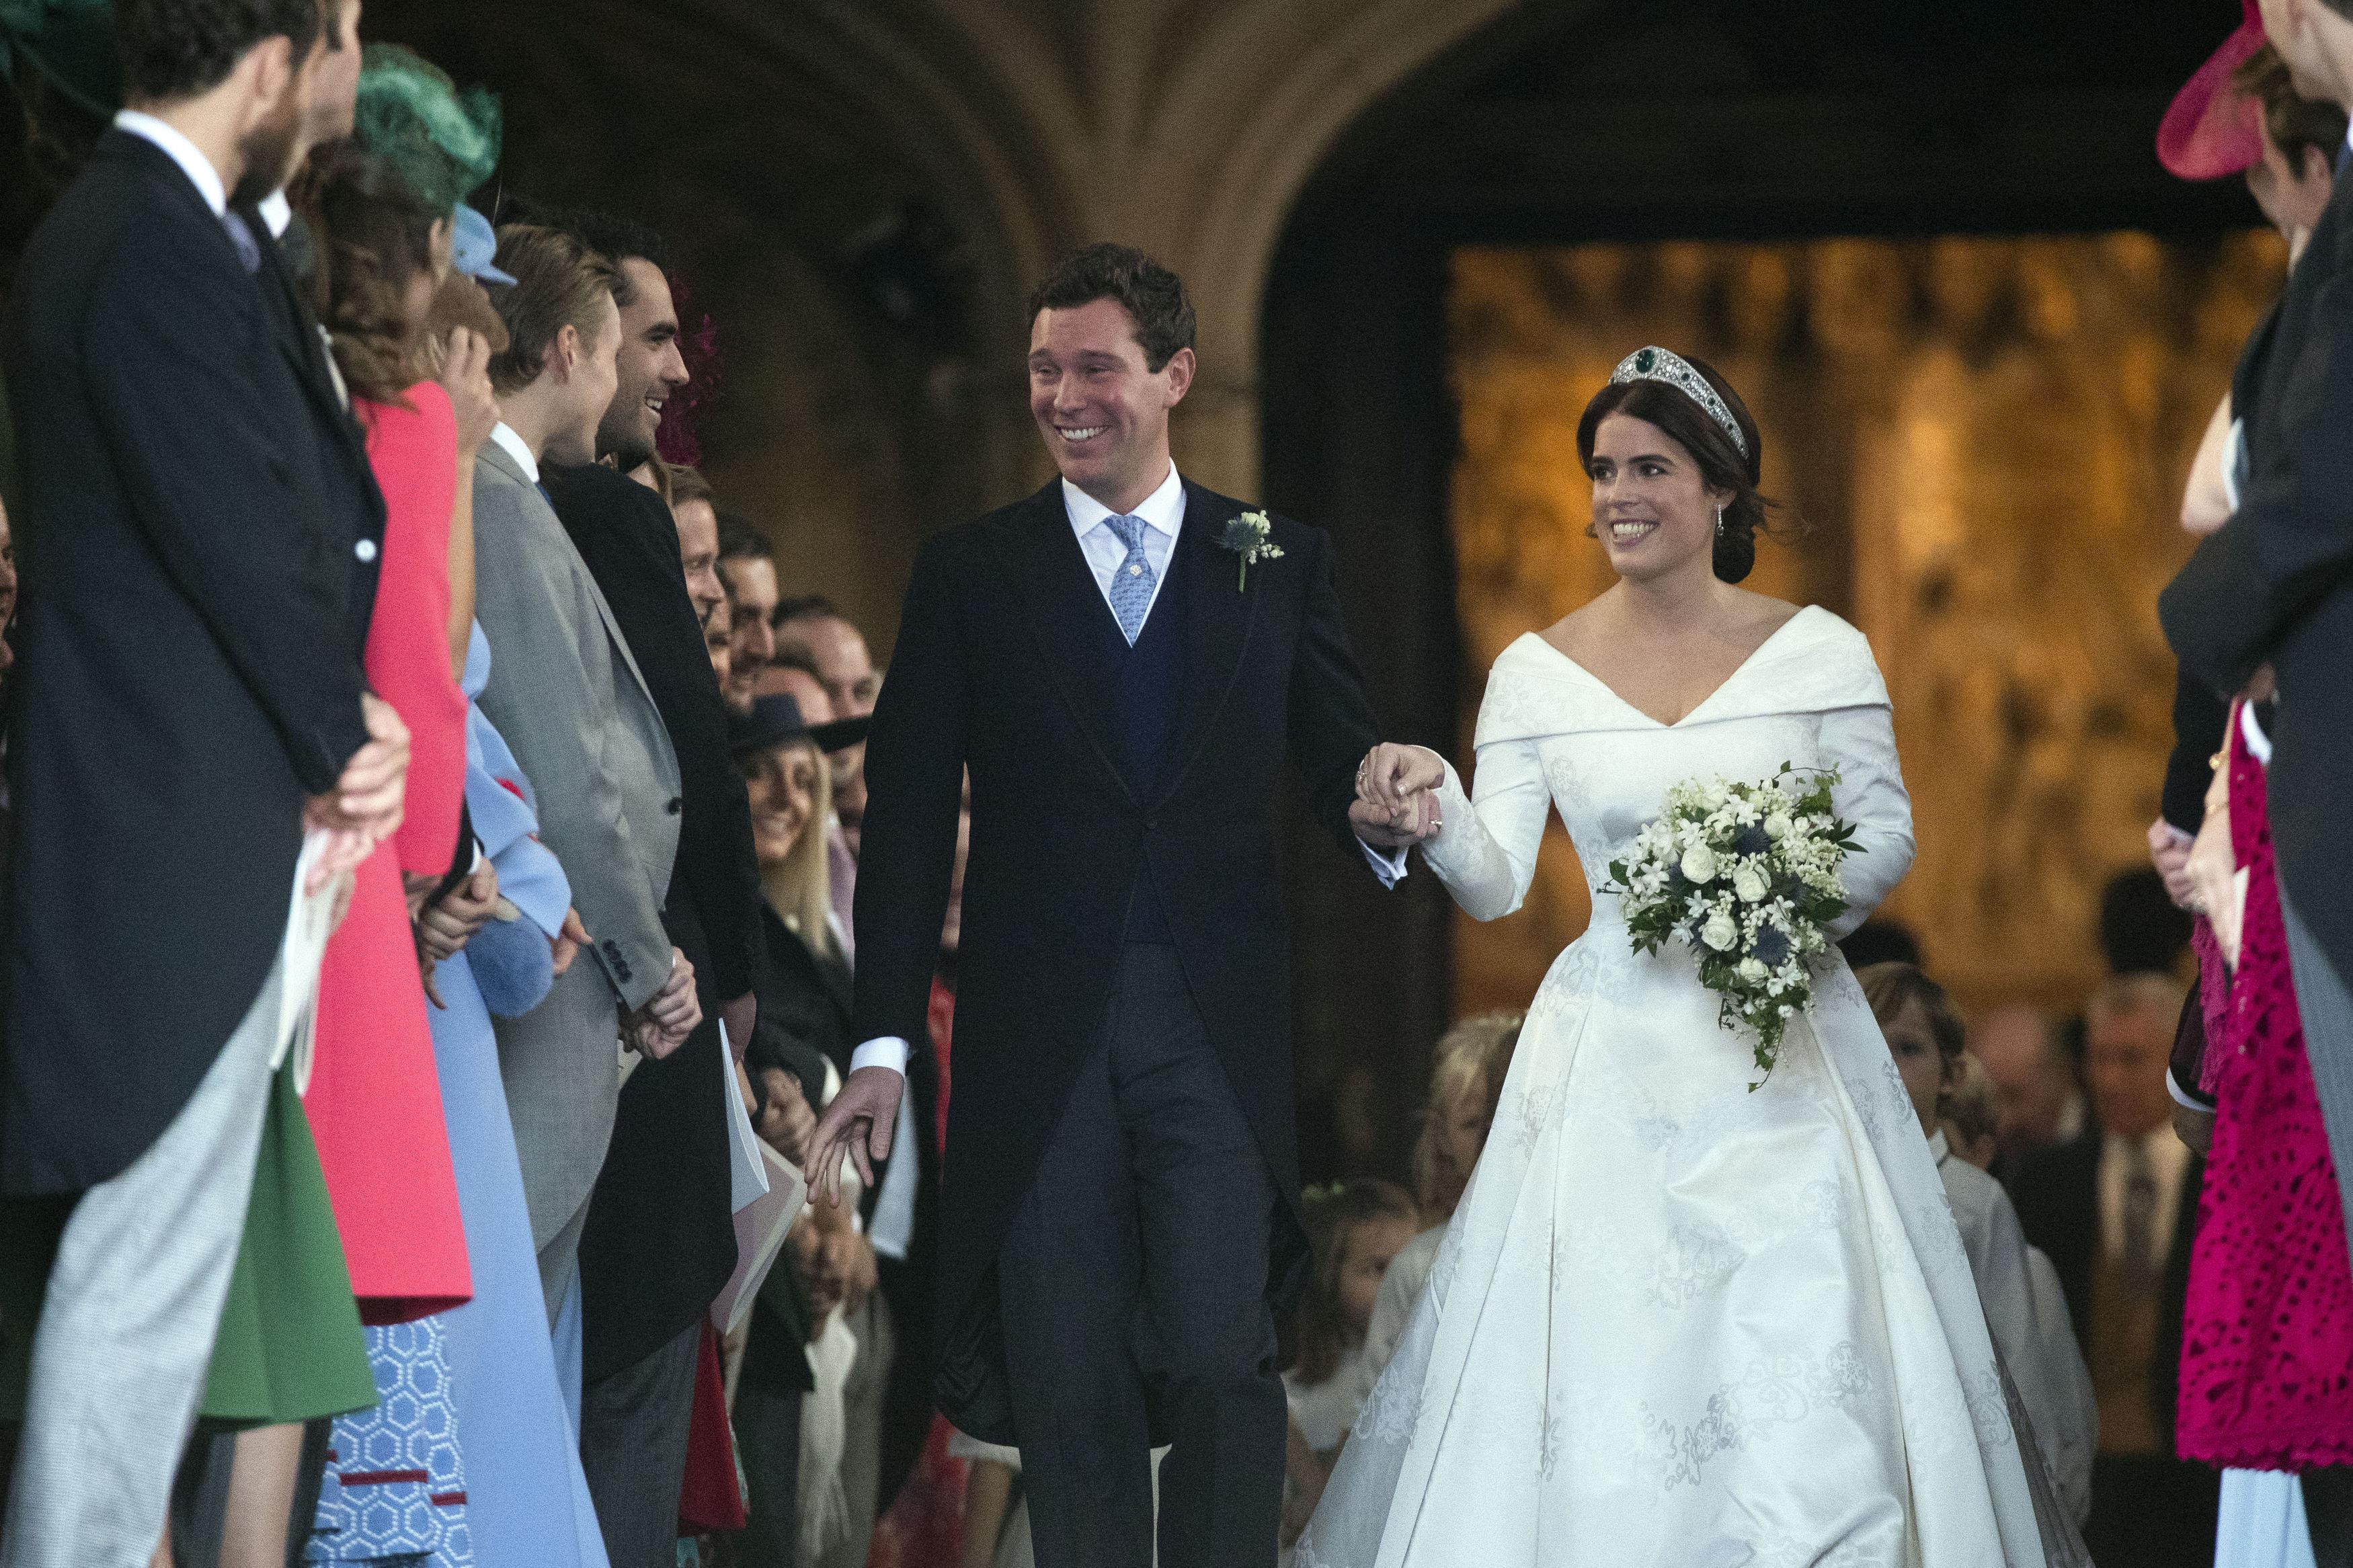 Britain's Princess Eugenie of York and her husband Jack Brooksbank at their wedding ceremony in St. George's Chapel in Windsor on Friday.